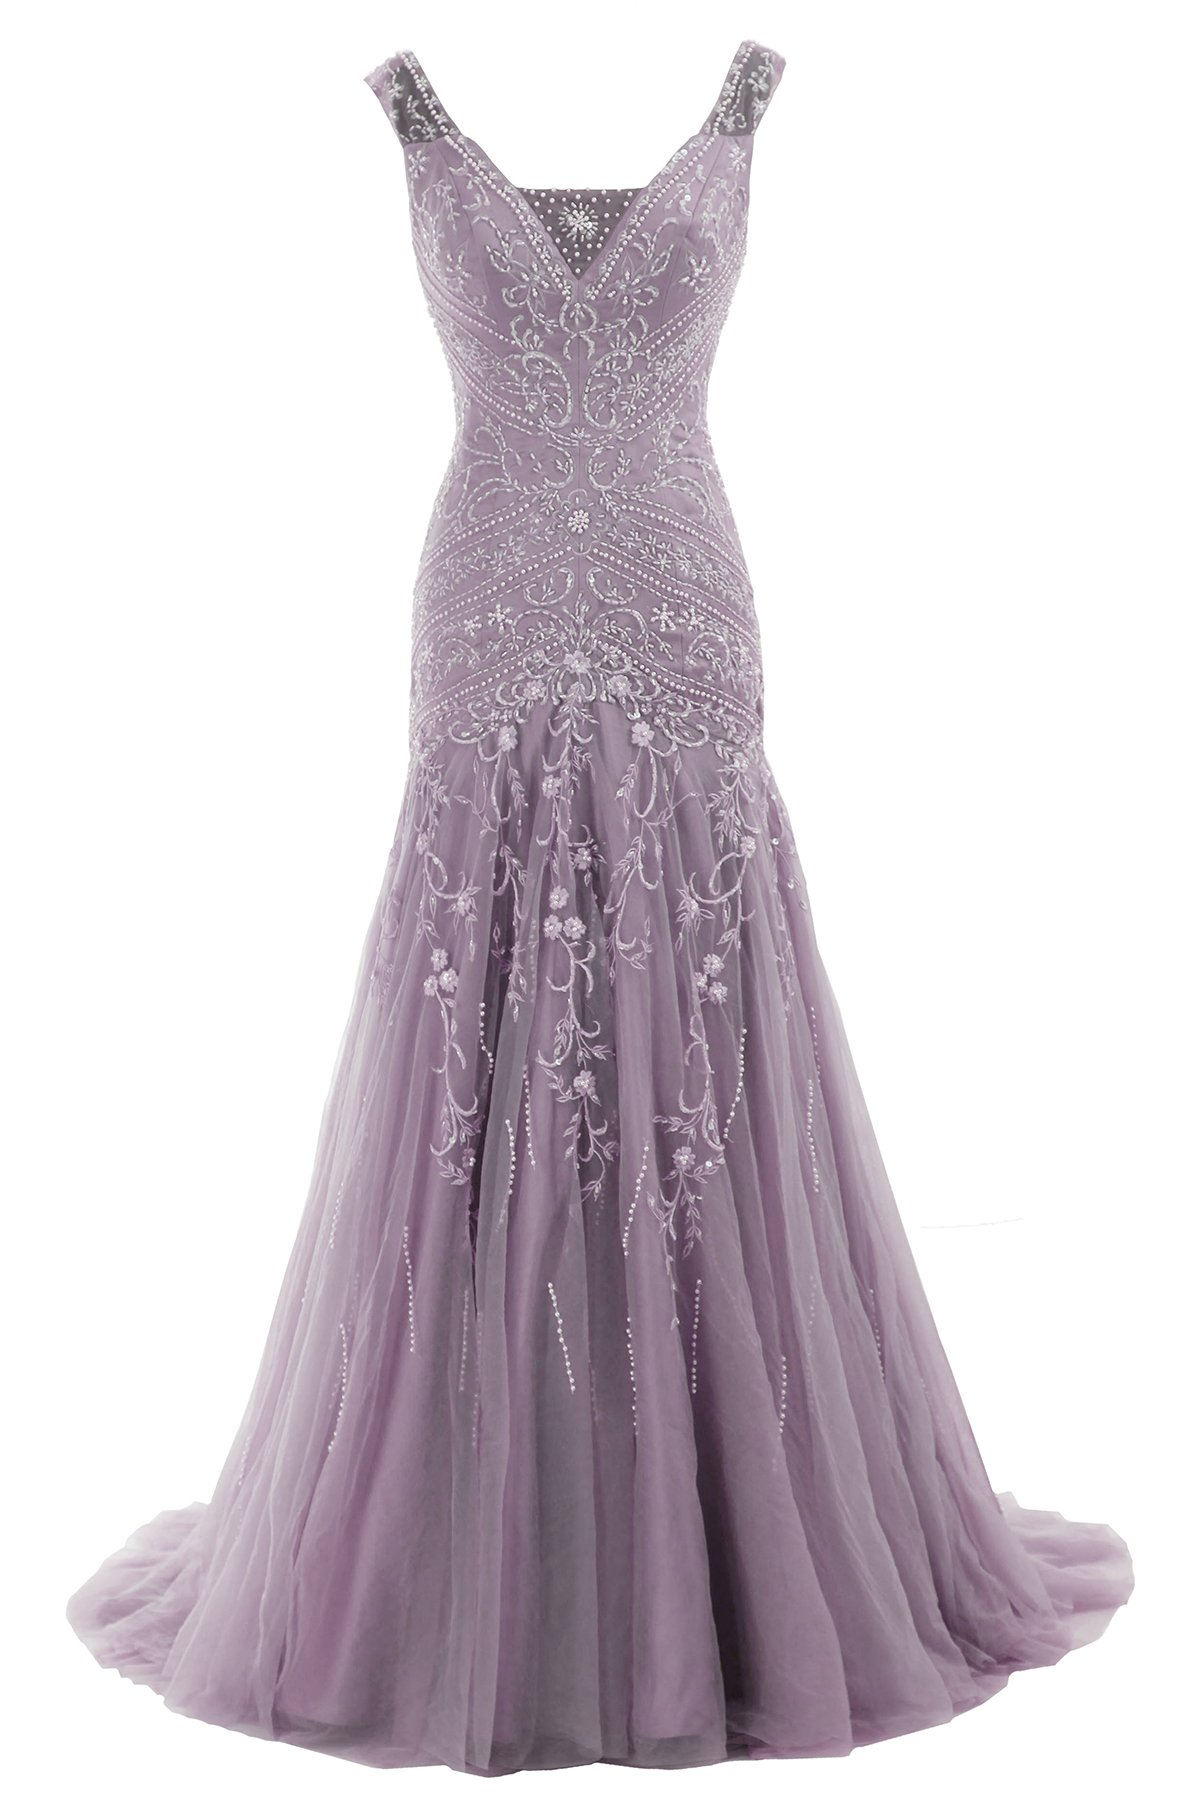 COCOMELODY Trumpet V Neck Long Beaded Prom Evening Dress Bmmc0009 Purple 12